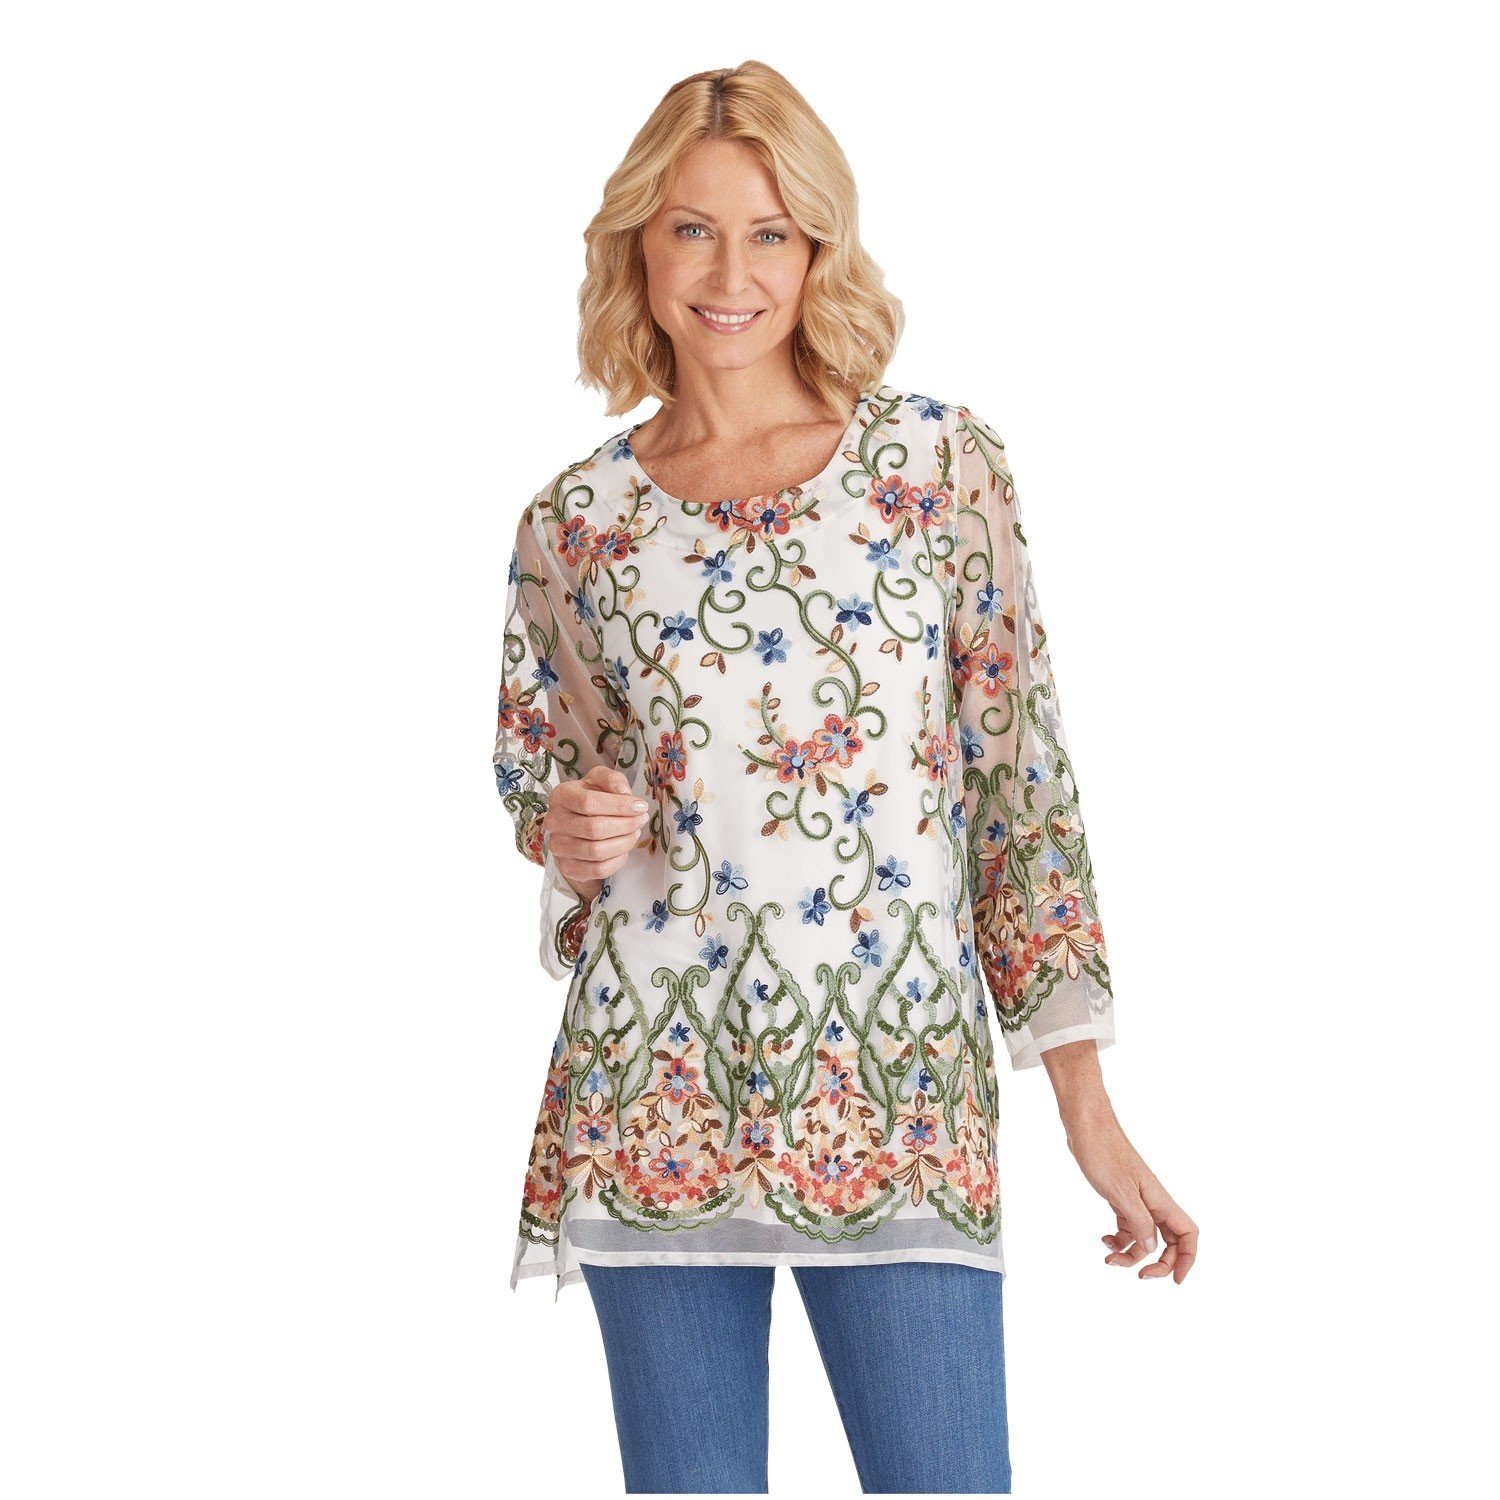 CATALOG CLASSICS Women's Embroidered Long Fit Tunic Top - Long Sleeved Scoop Neck Sheer Blouse - 2X